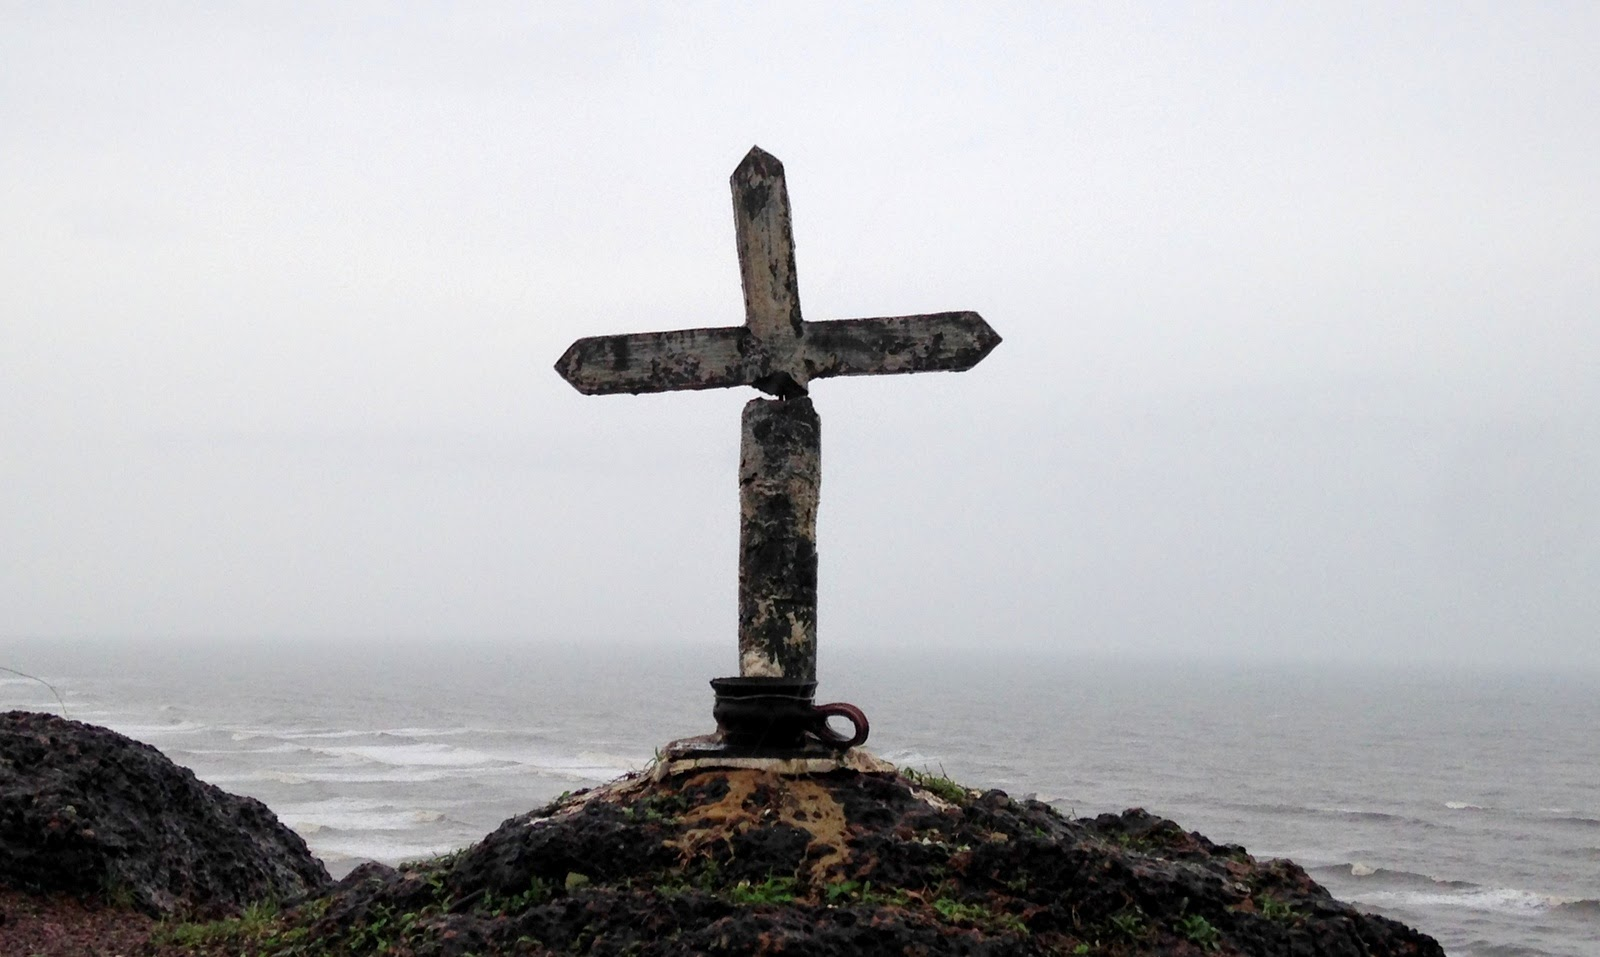 A small cross installed atop the hill